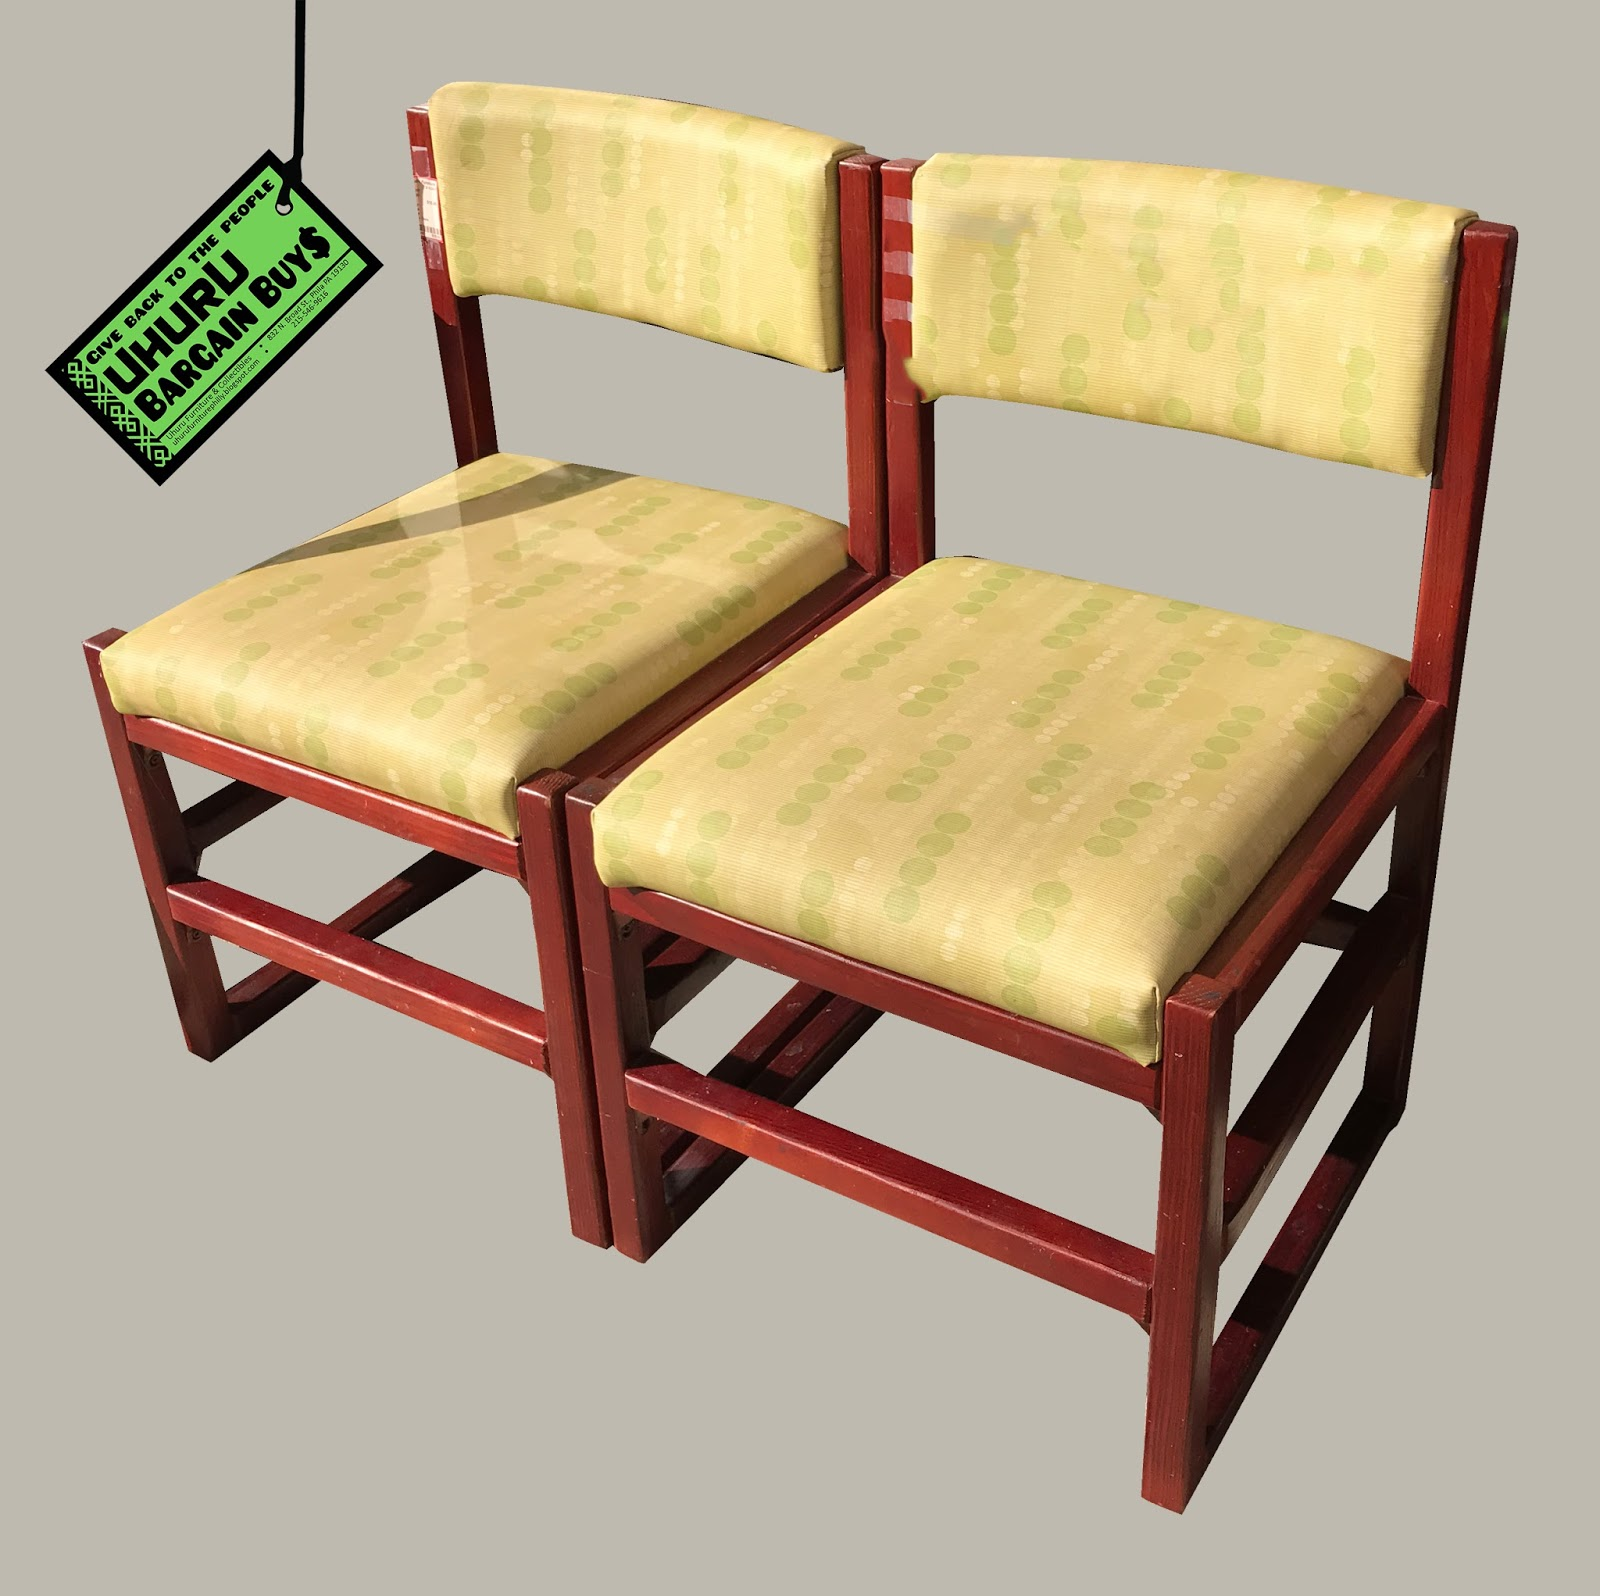 Superb Uhuru Furniture Collectibles Bargain Buy Pair Of Chairs Download Free Architecture Designs Crovemadebymaigaardcom